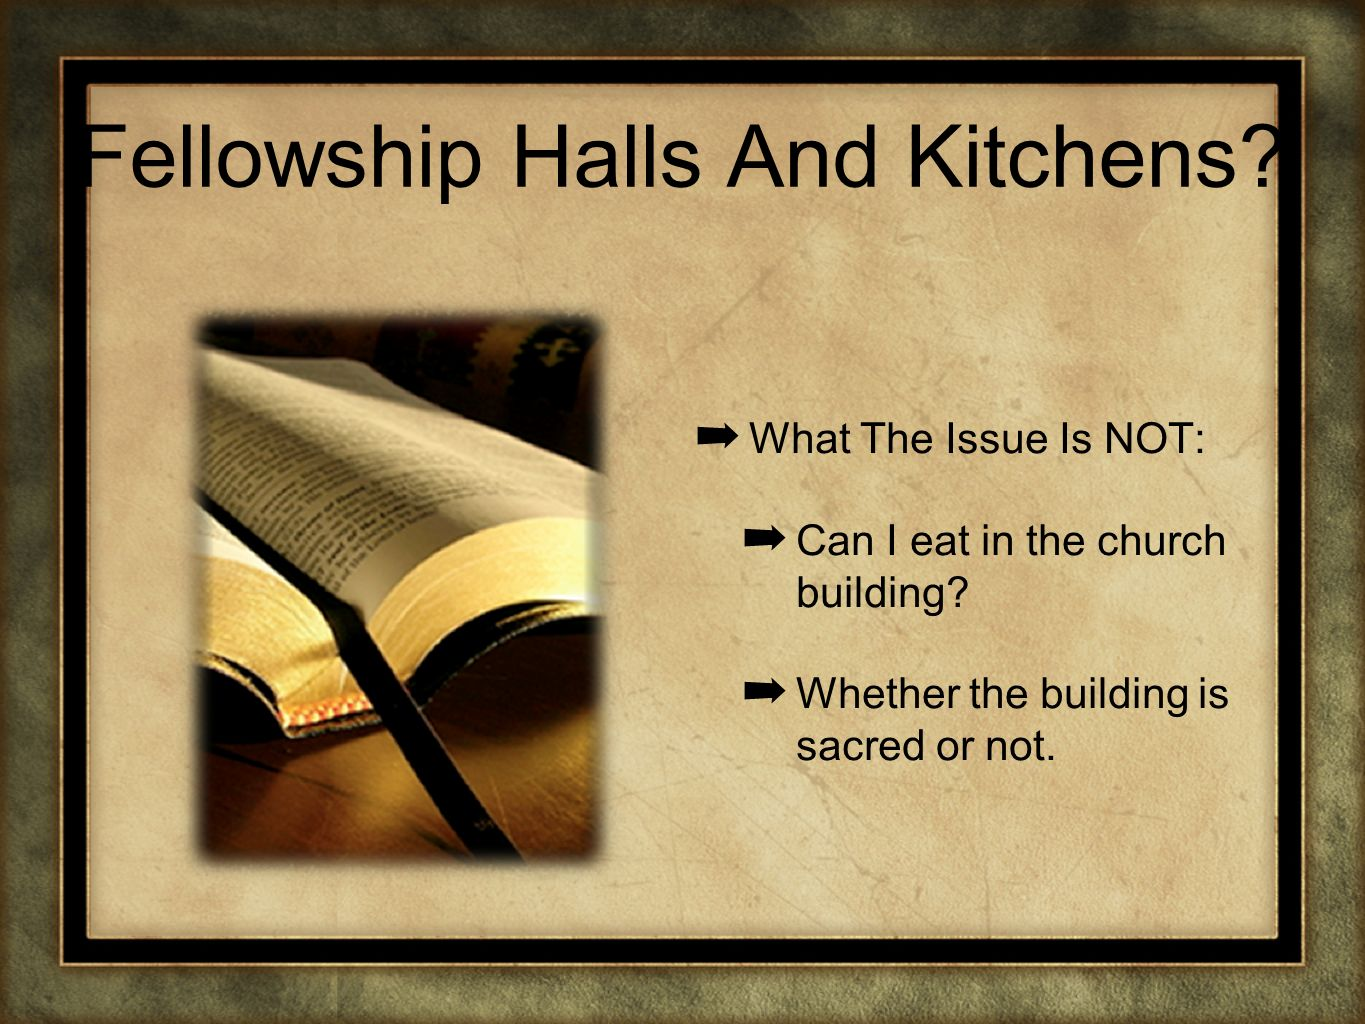 Fellowship Halls And Kitchens? What The Issue Is NOT: Can I eat in the church building? Whether the building is sacred or not.